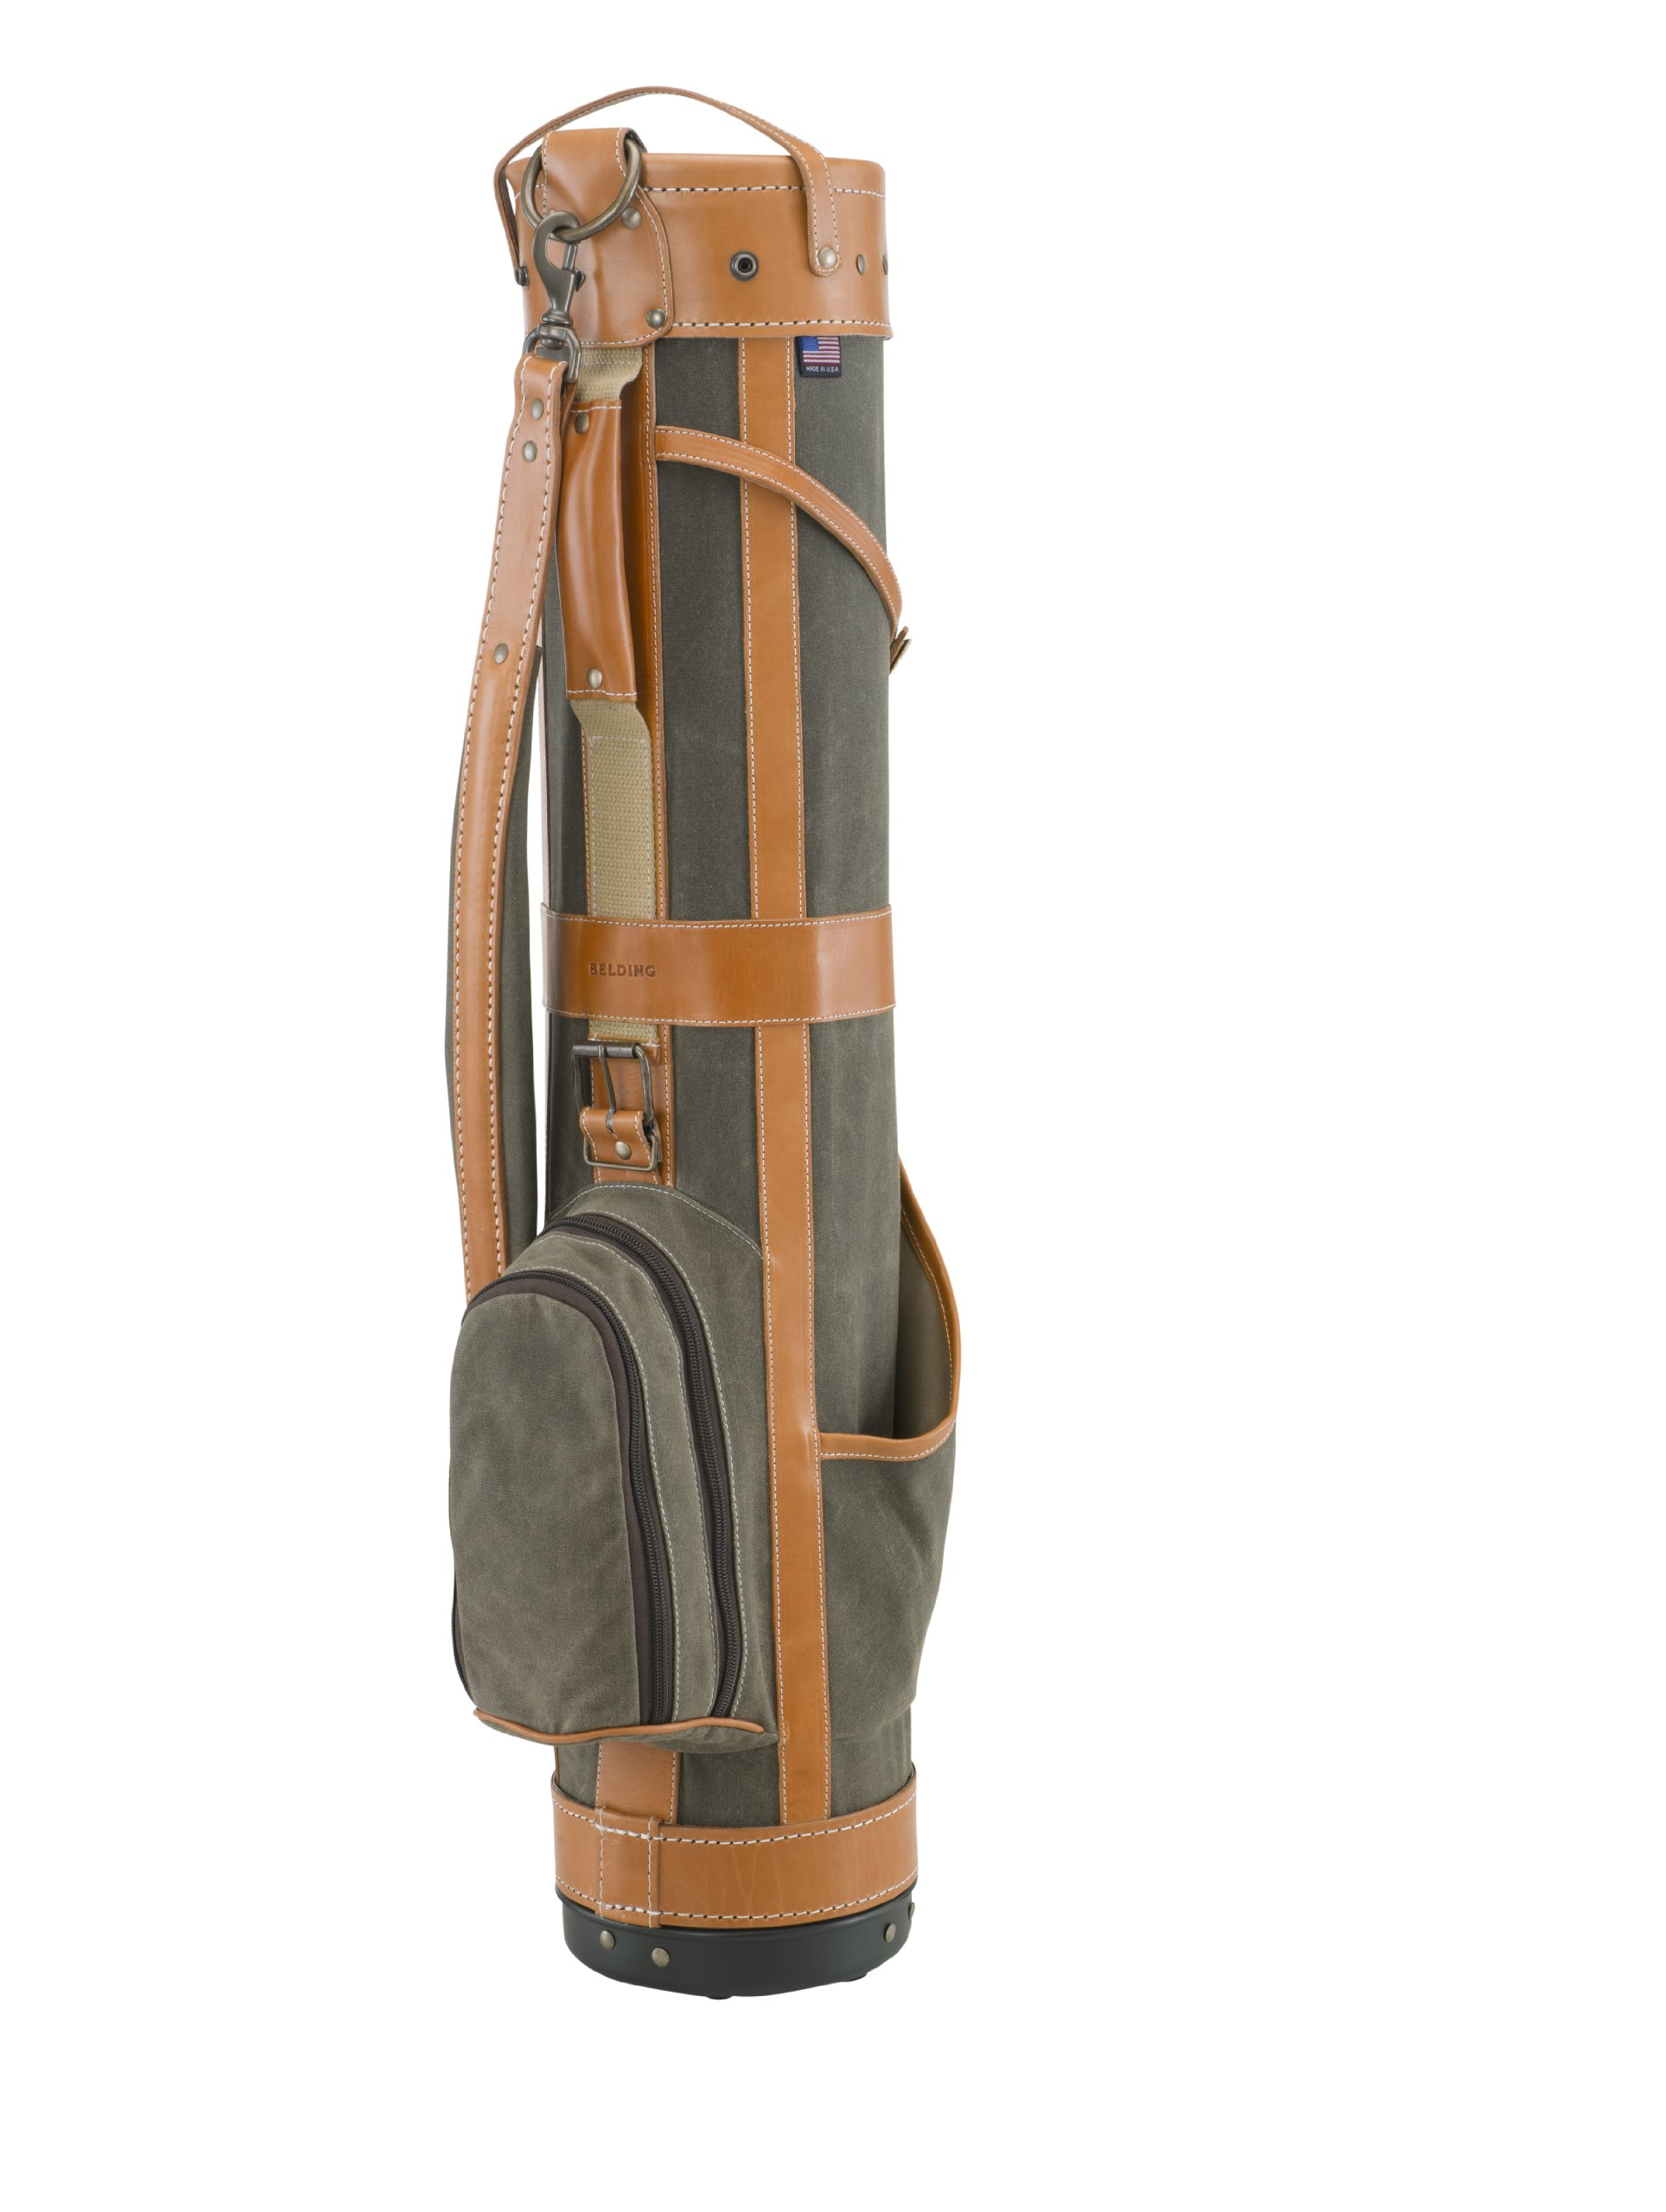 BELDING American Collection Pencil Golf Bag, 7-Inch, Sage